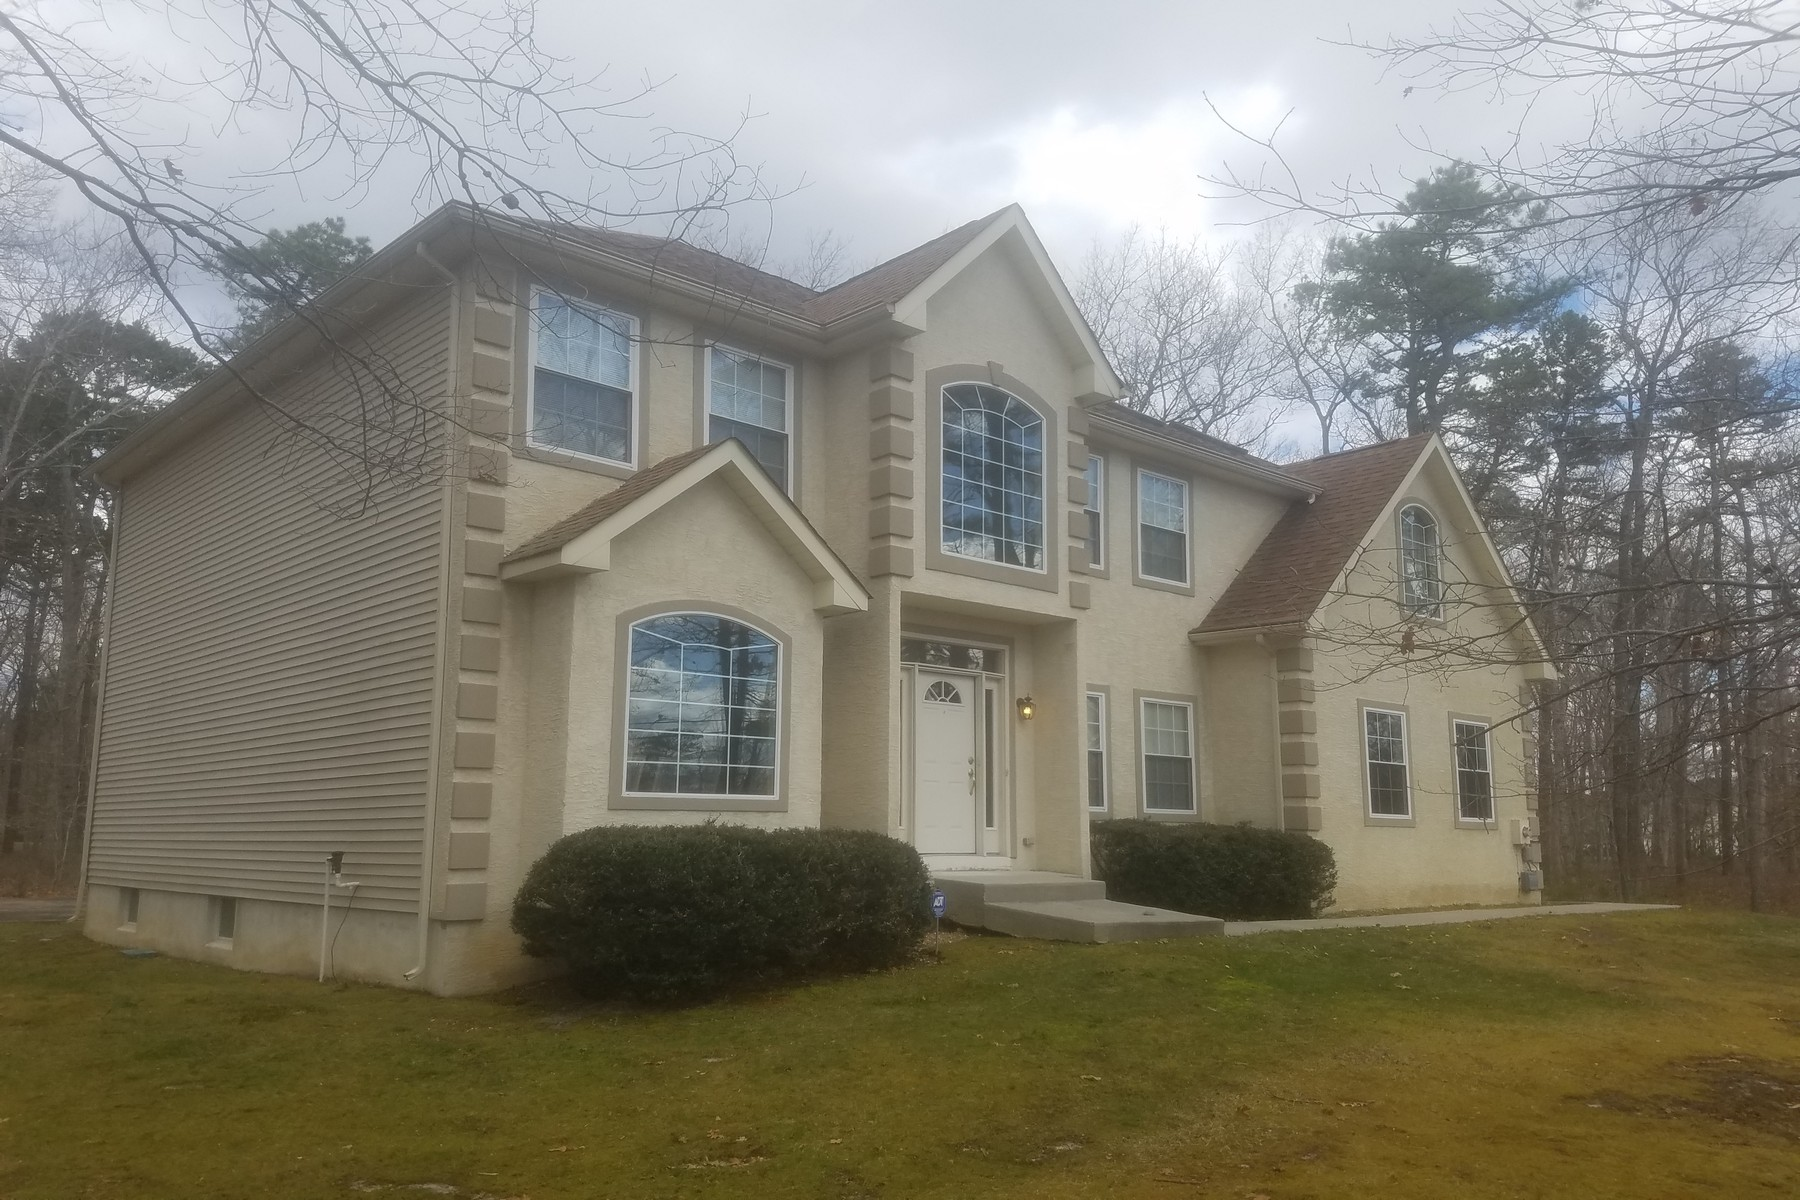 Single Family Home for Sale at 407 S 2nd Street 407 S 2nd Ave, Galloway, New Jersey 08205 United States